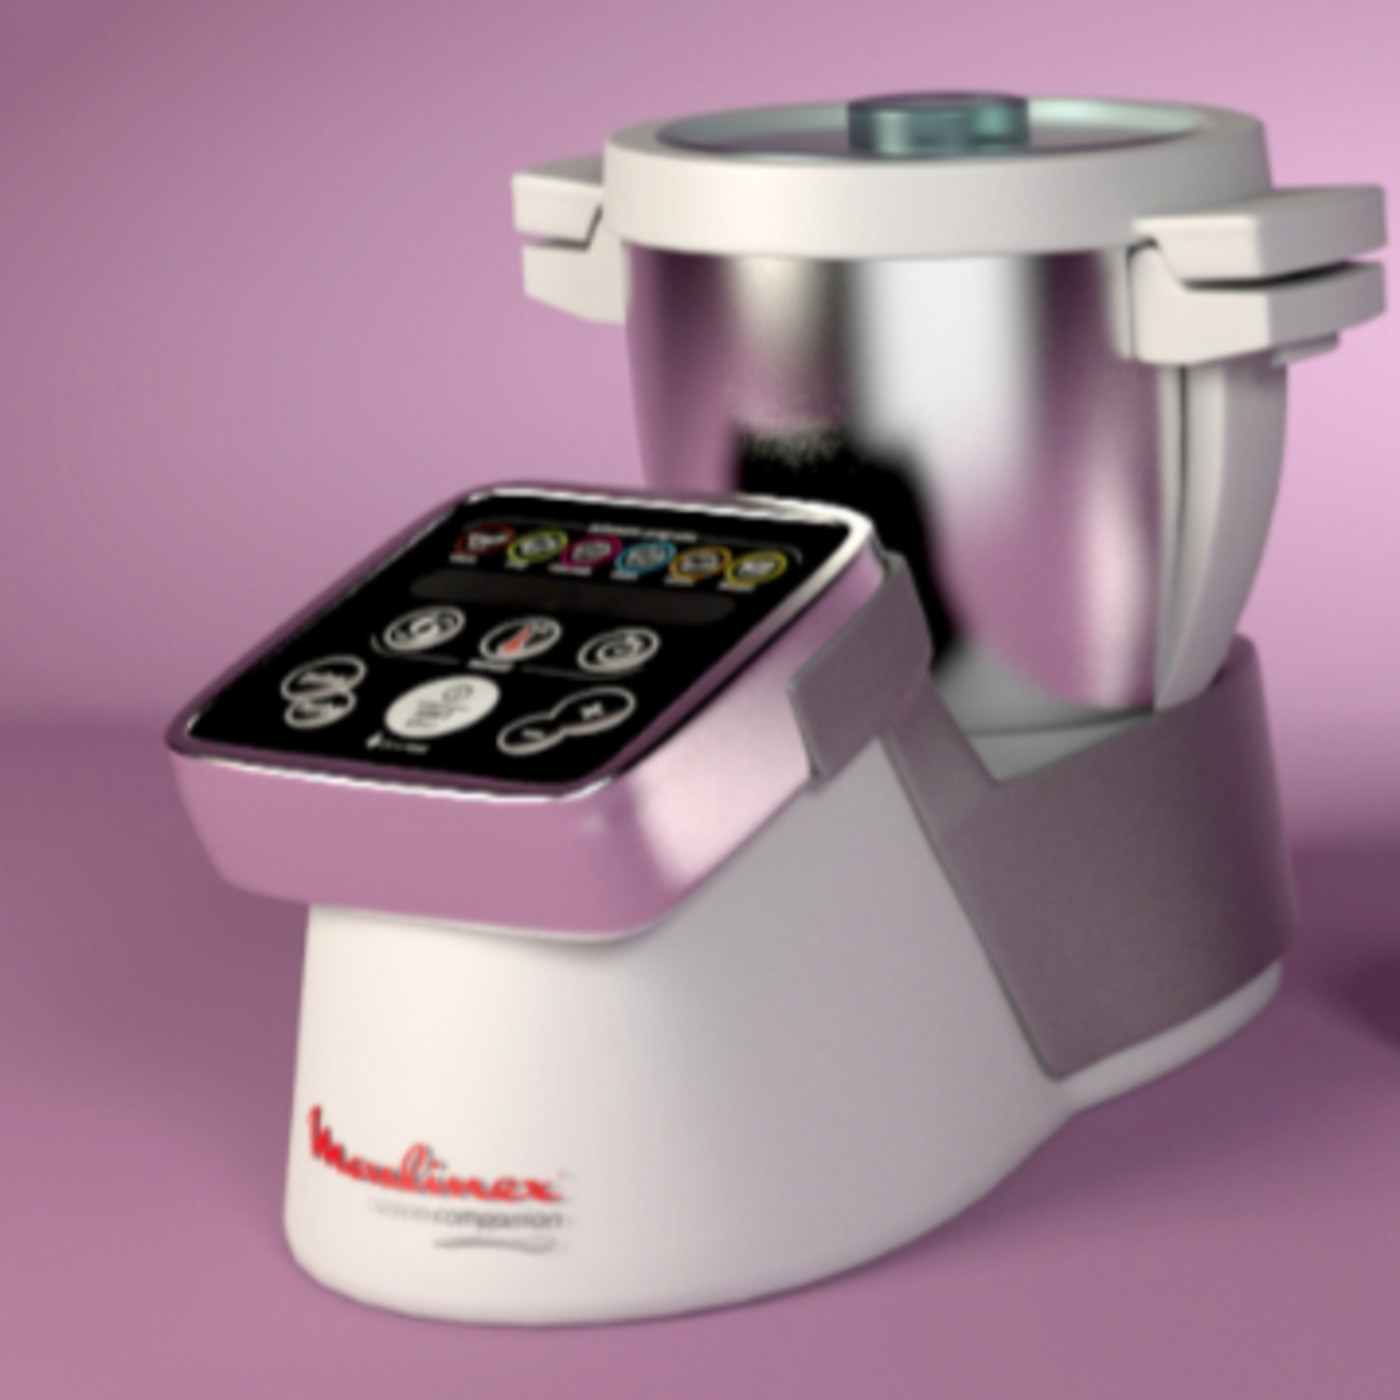 Moulinex cuisine companion vs thermomix en cucodamore en mp3 13 08 a las 21 36 17 07 14 - Companion moulinex ou thermomix ...